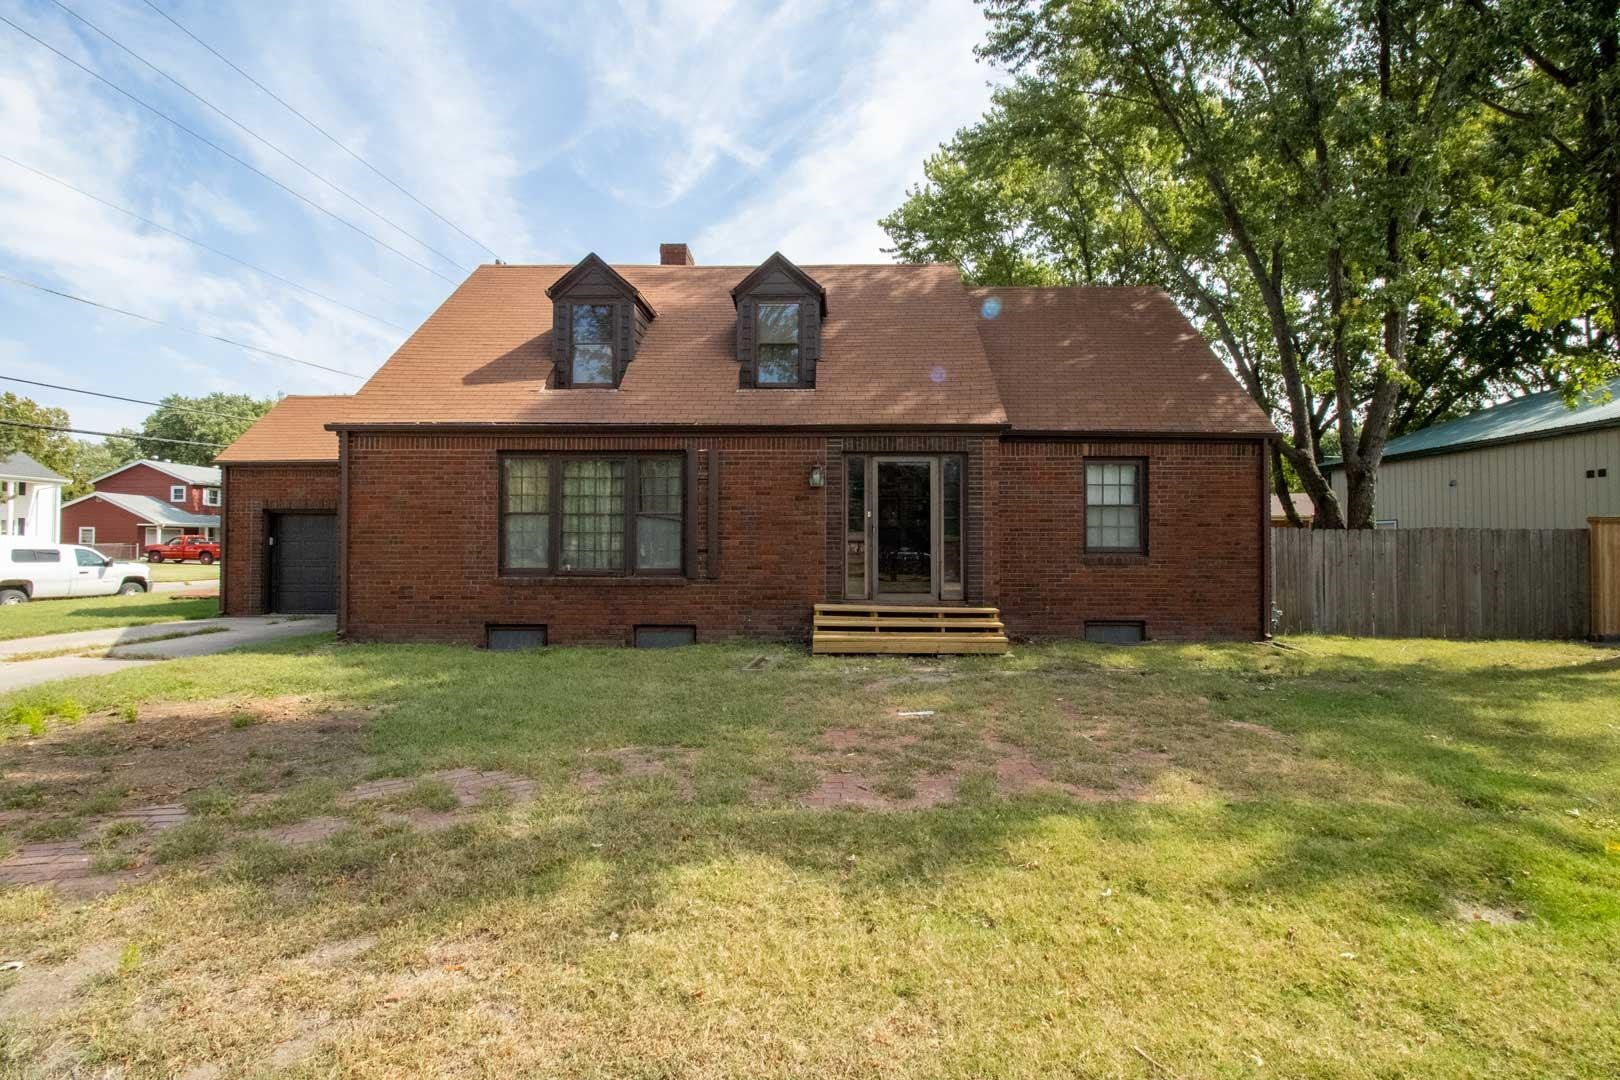 Property offered at ONLINE ONLY auction. BIDDING OPENS: Tuesday, October12th, 2021at 2:00 PM (cst)